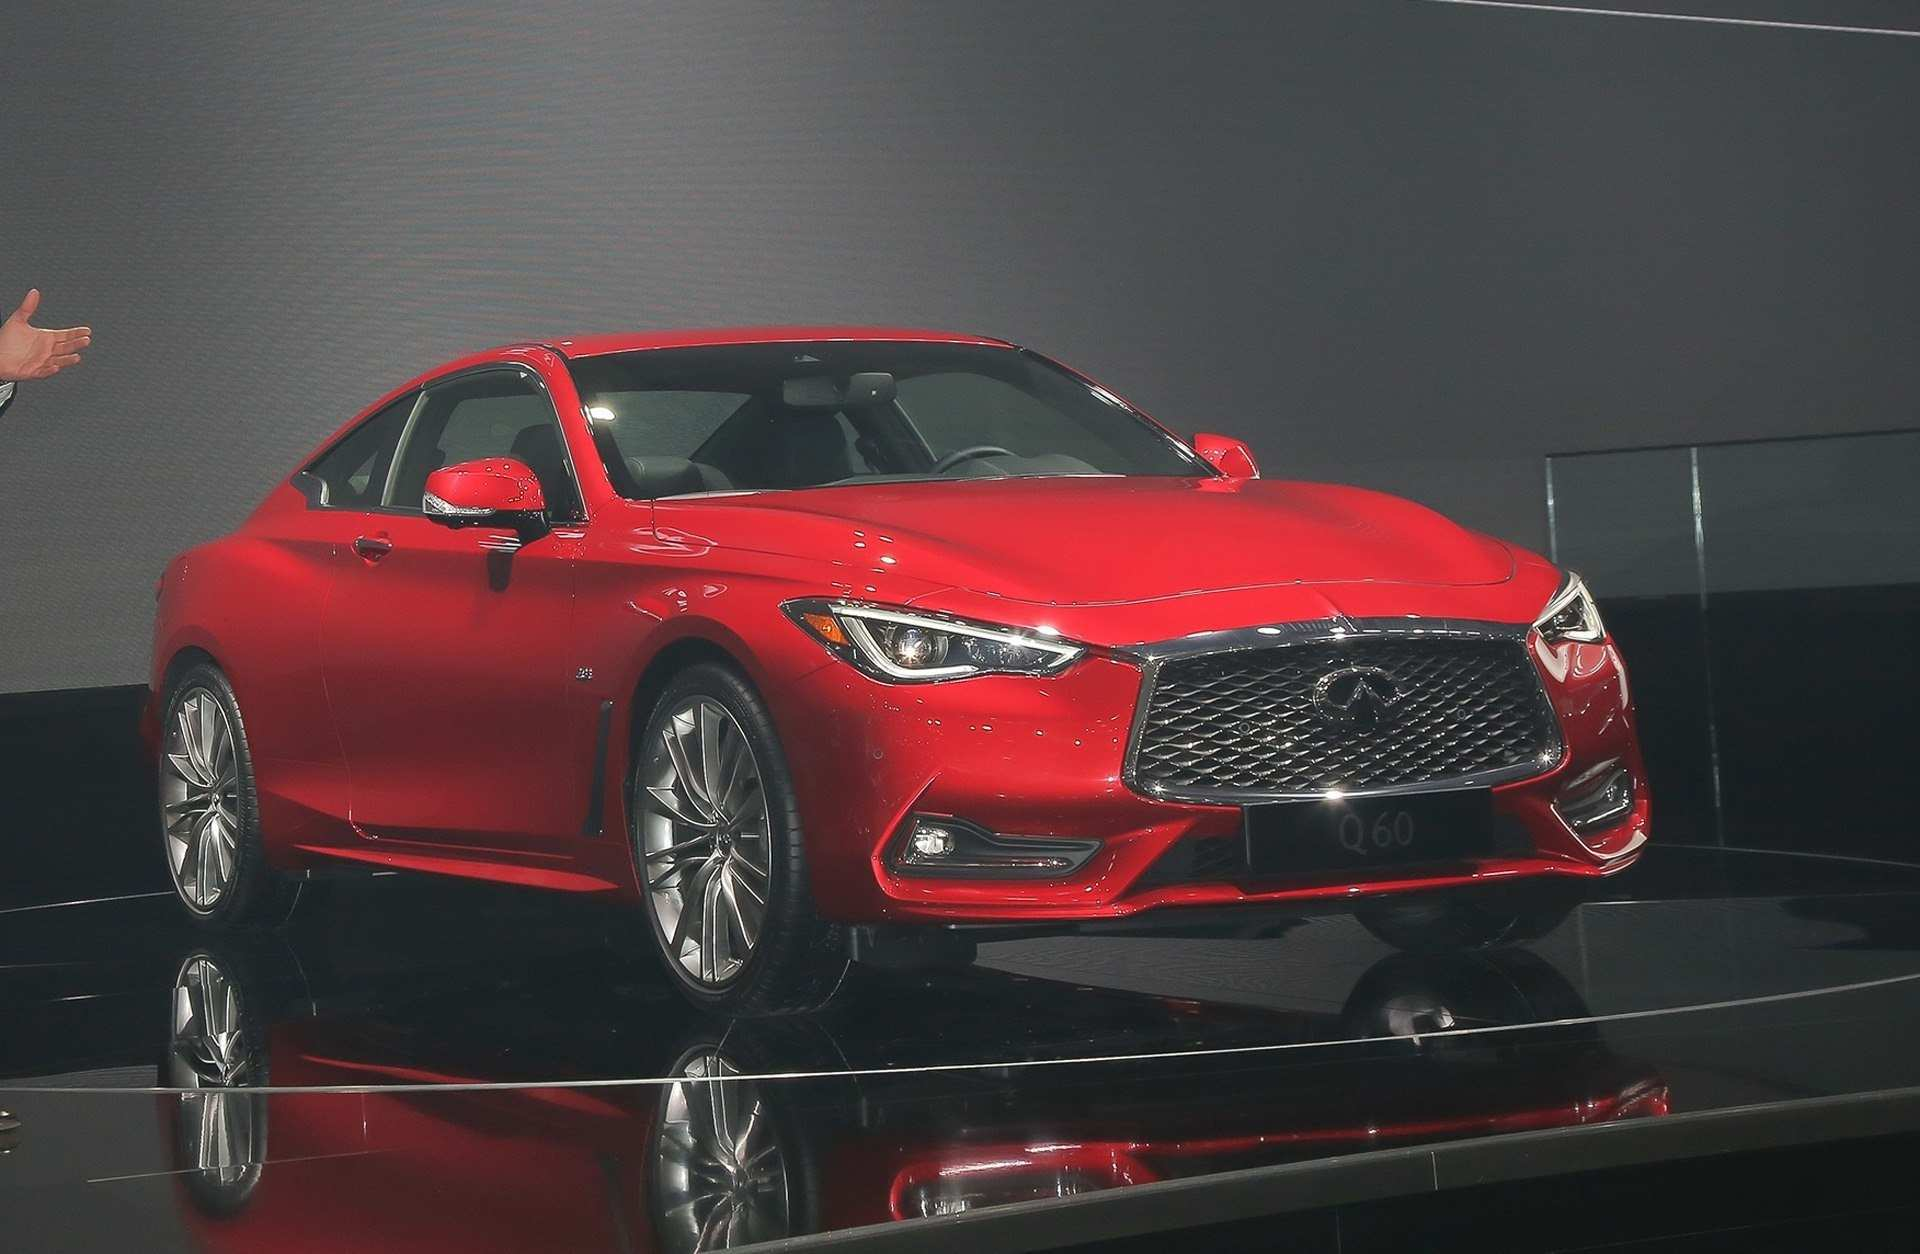 32 Great 2020 Infiniti Q60 Coupe Specs by 2020 Infiniti Q60 Coupe